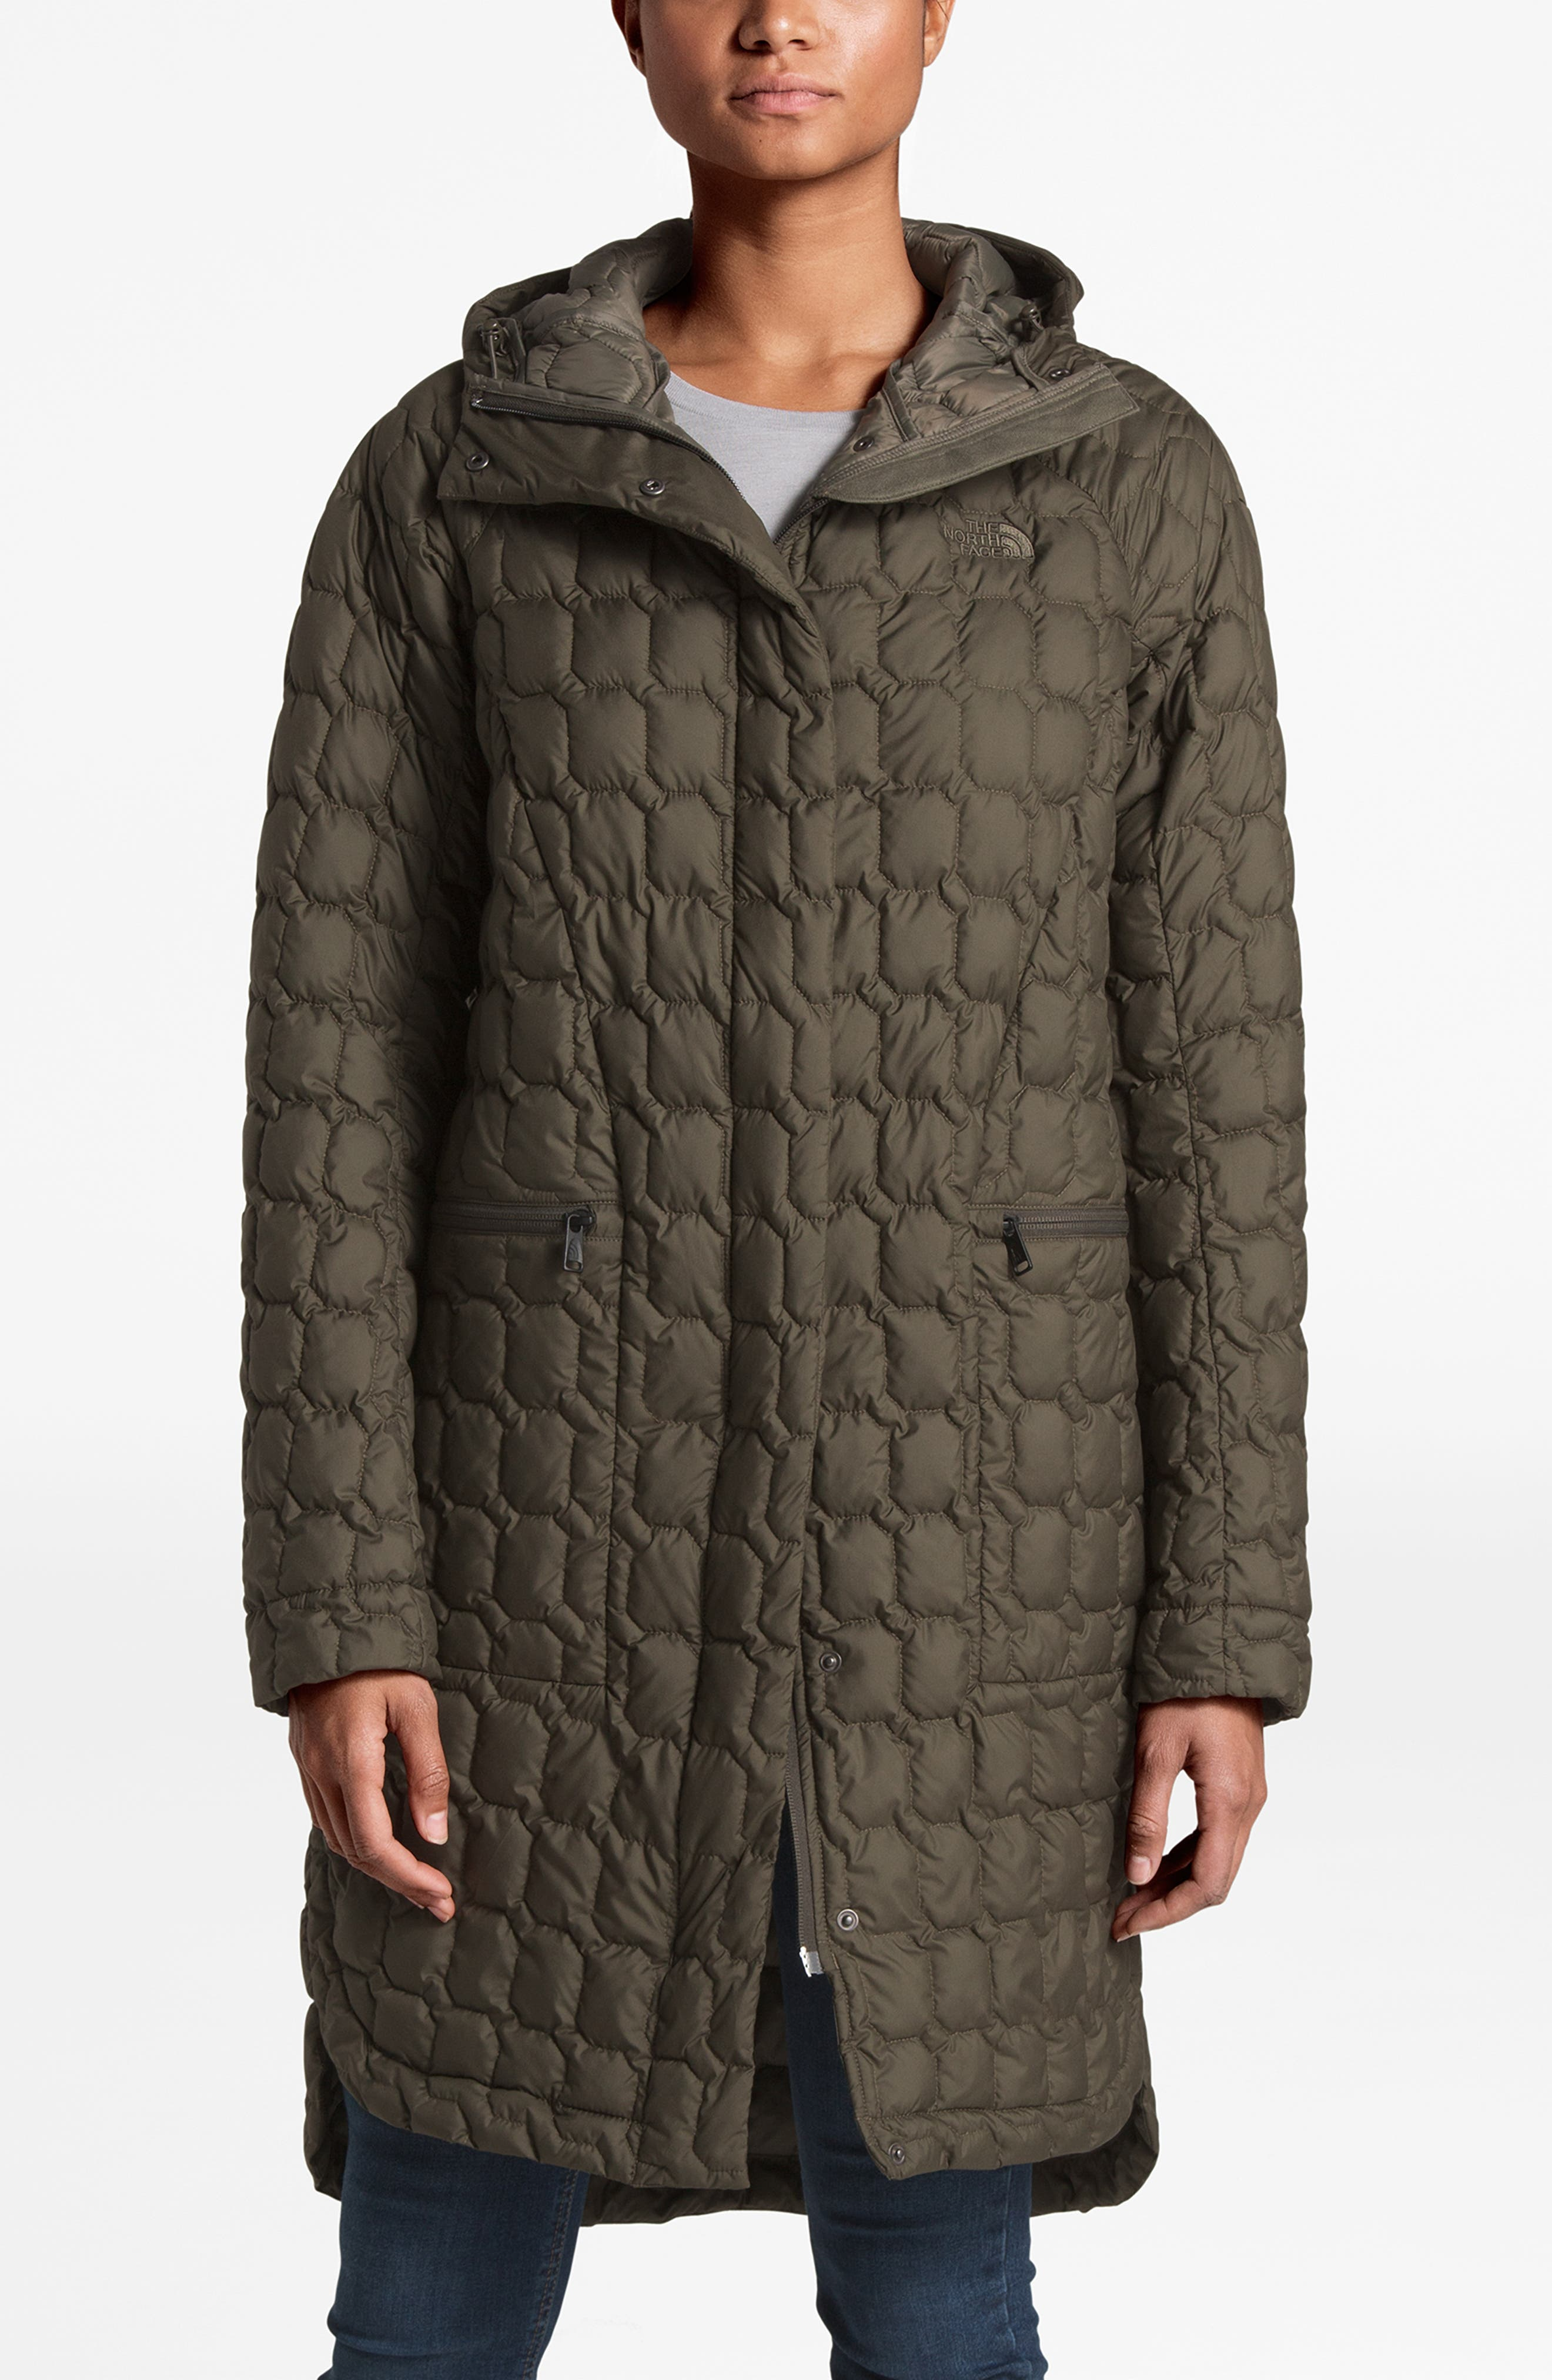 THE NORTH FACE, Thermoball<sup>™</sup> Water Resistant Duster Jacket, Alternate thumbnail 8, color, 301